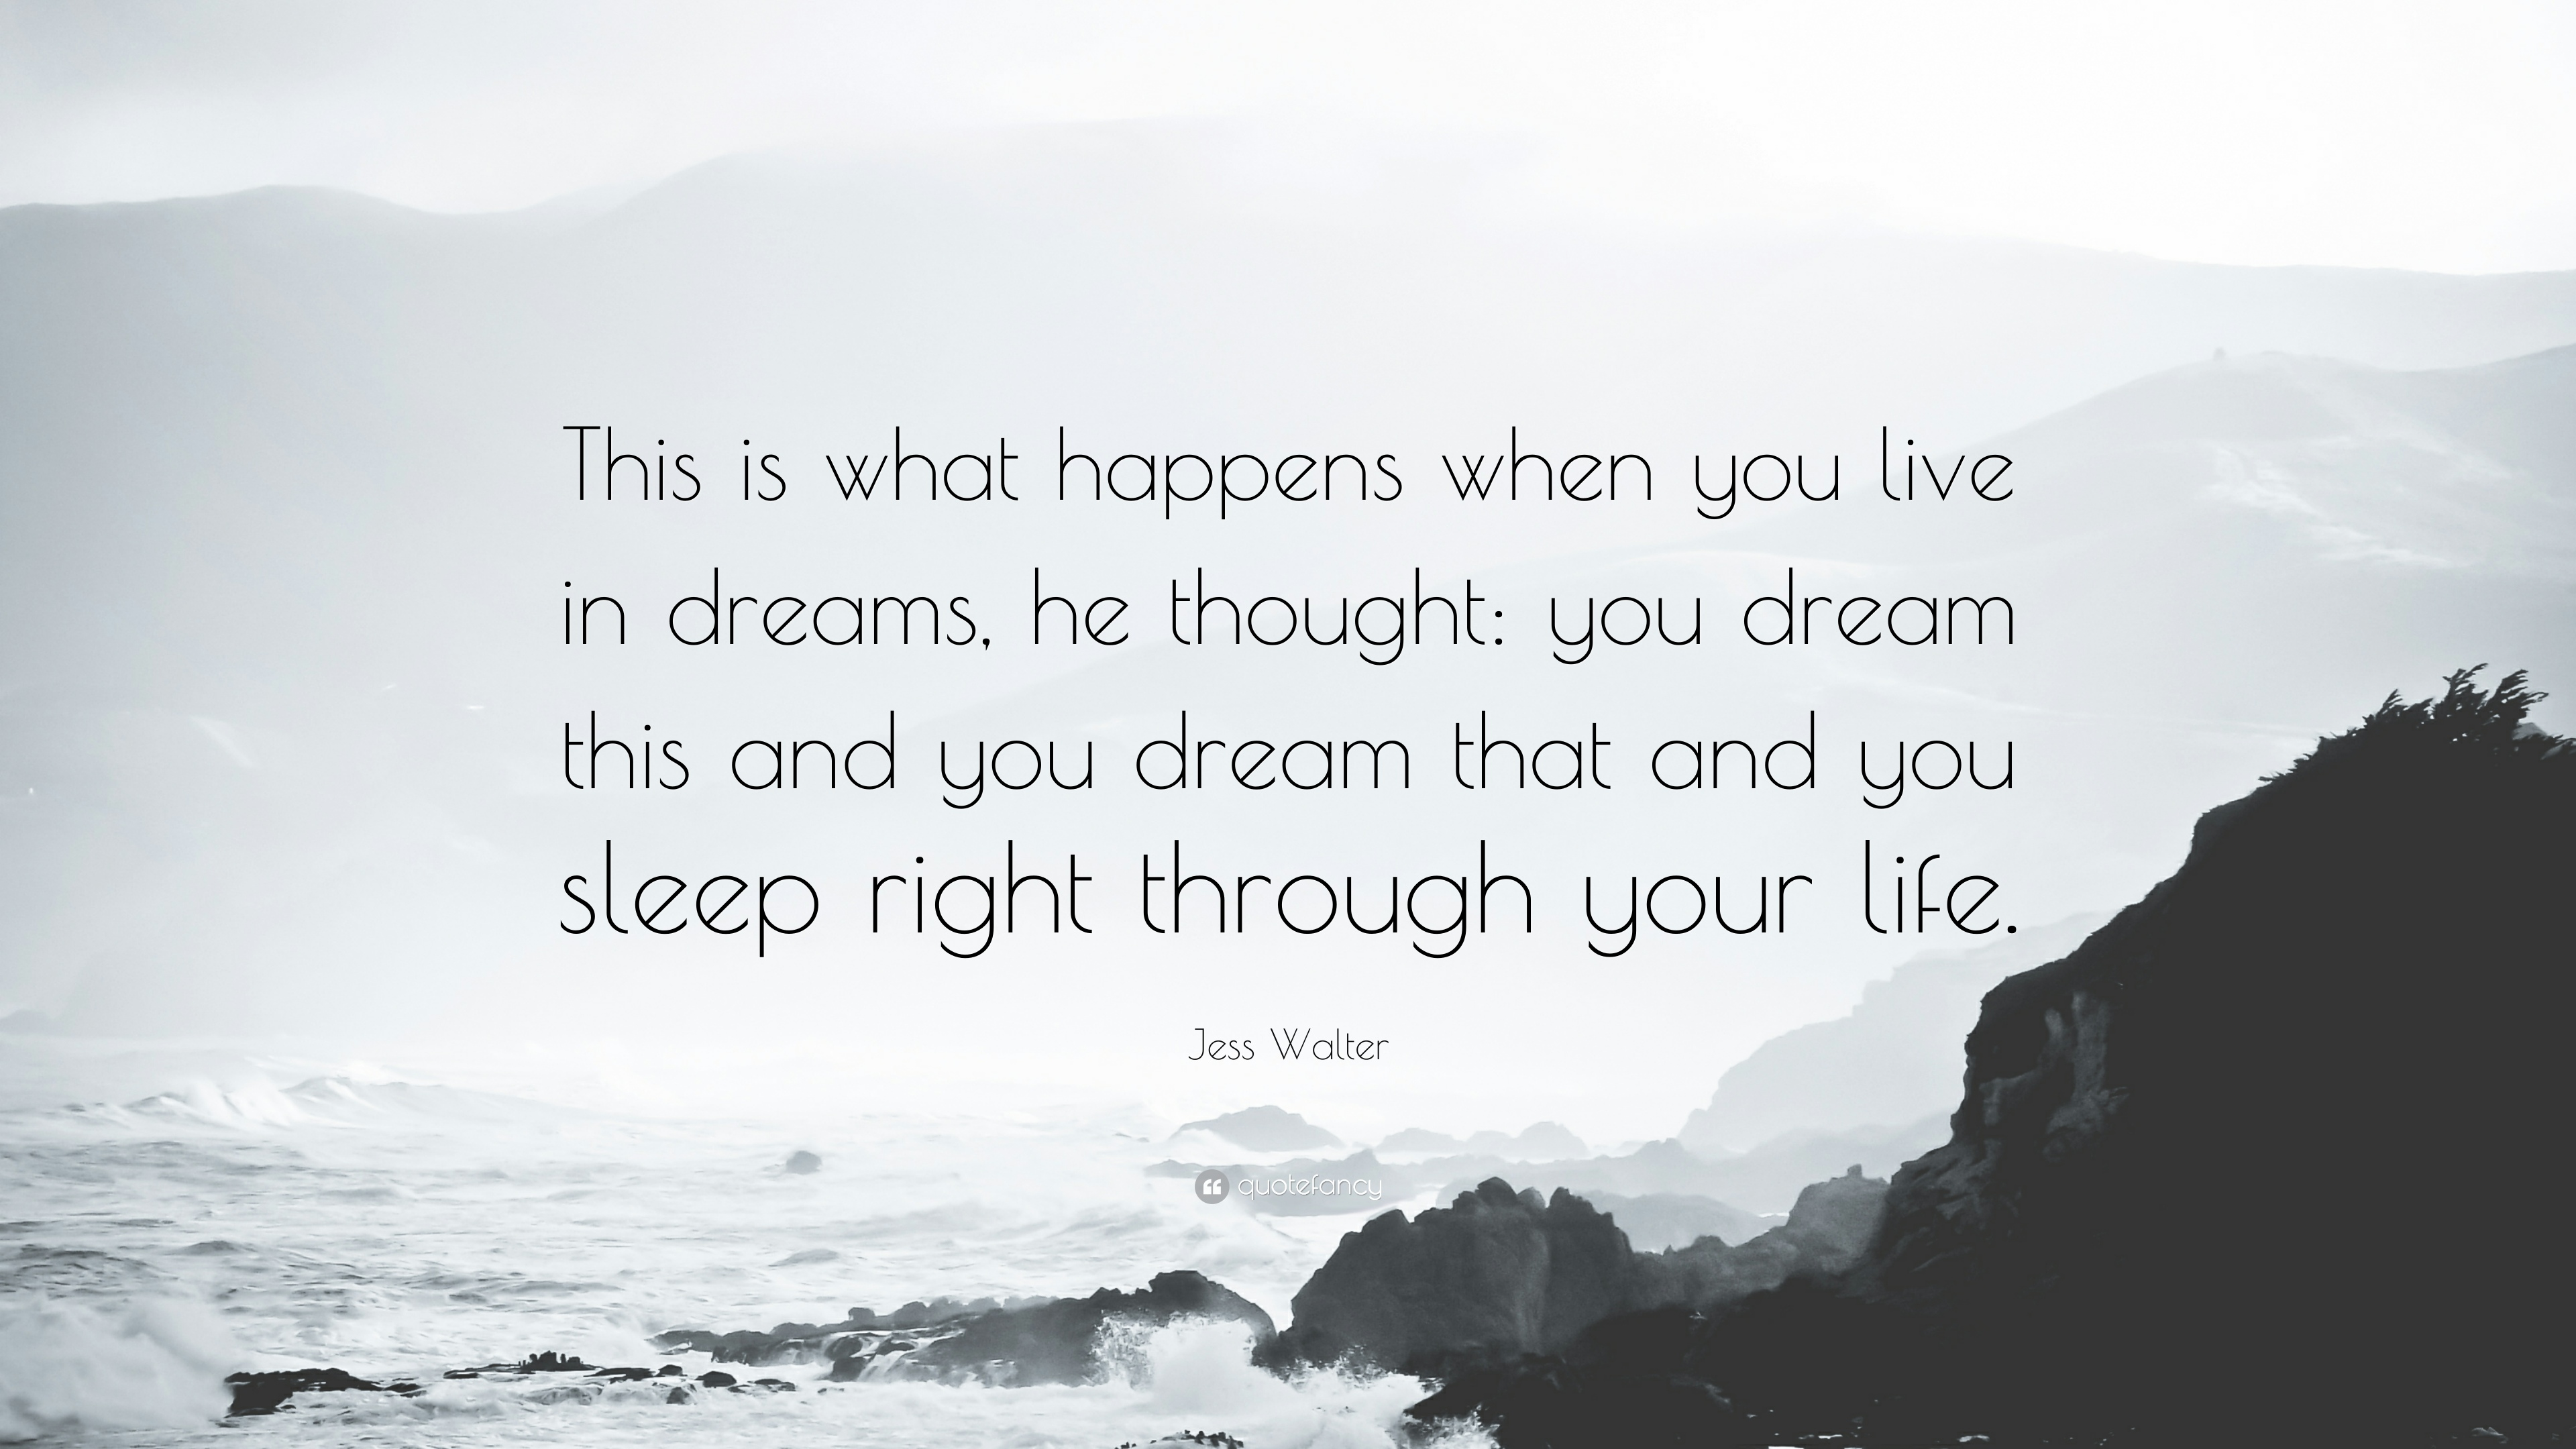 What If Our Dreams Are Right And >> Jess Walter Quote This Is What Happens When You Live In Dreams He